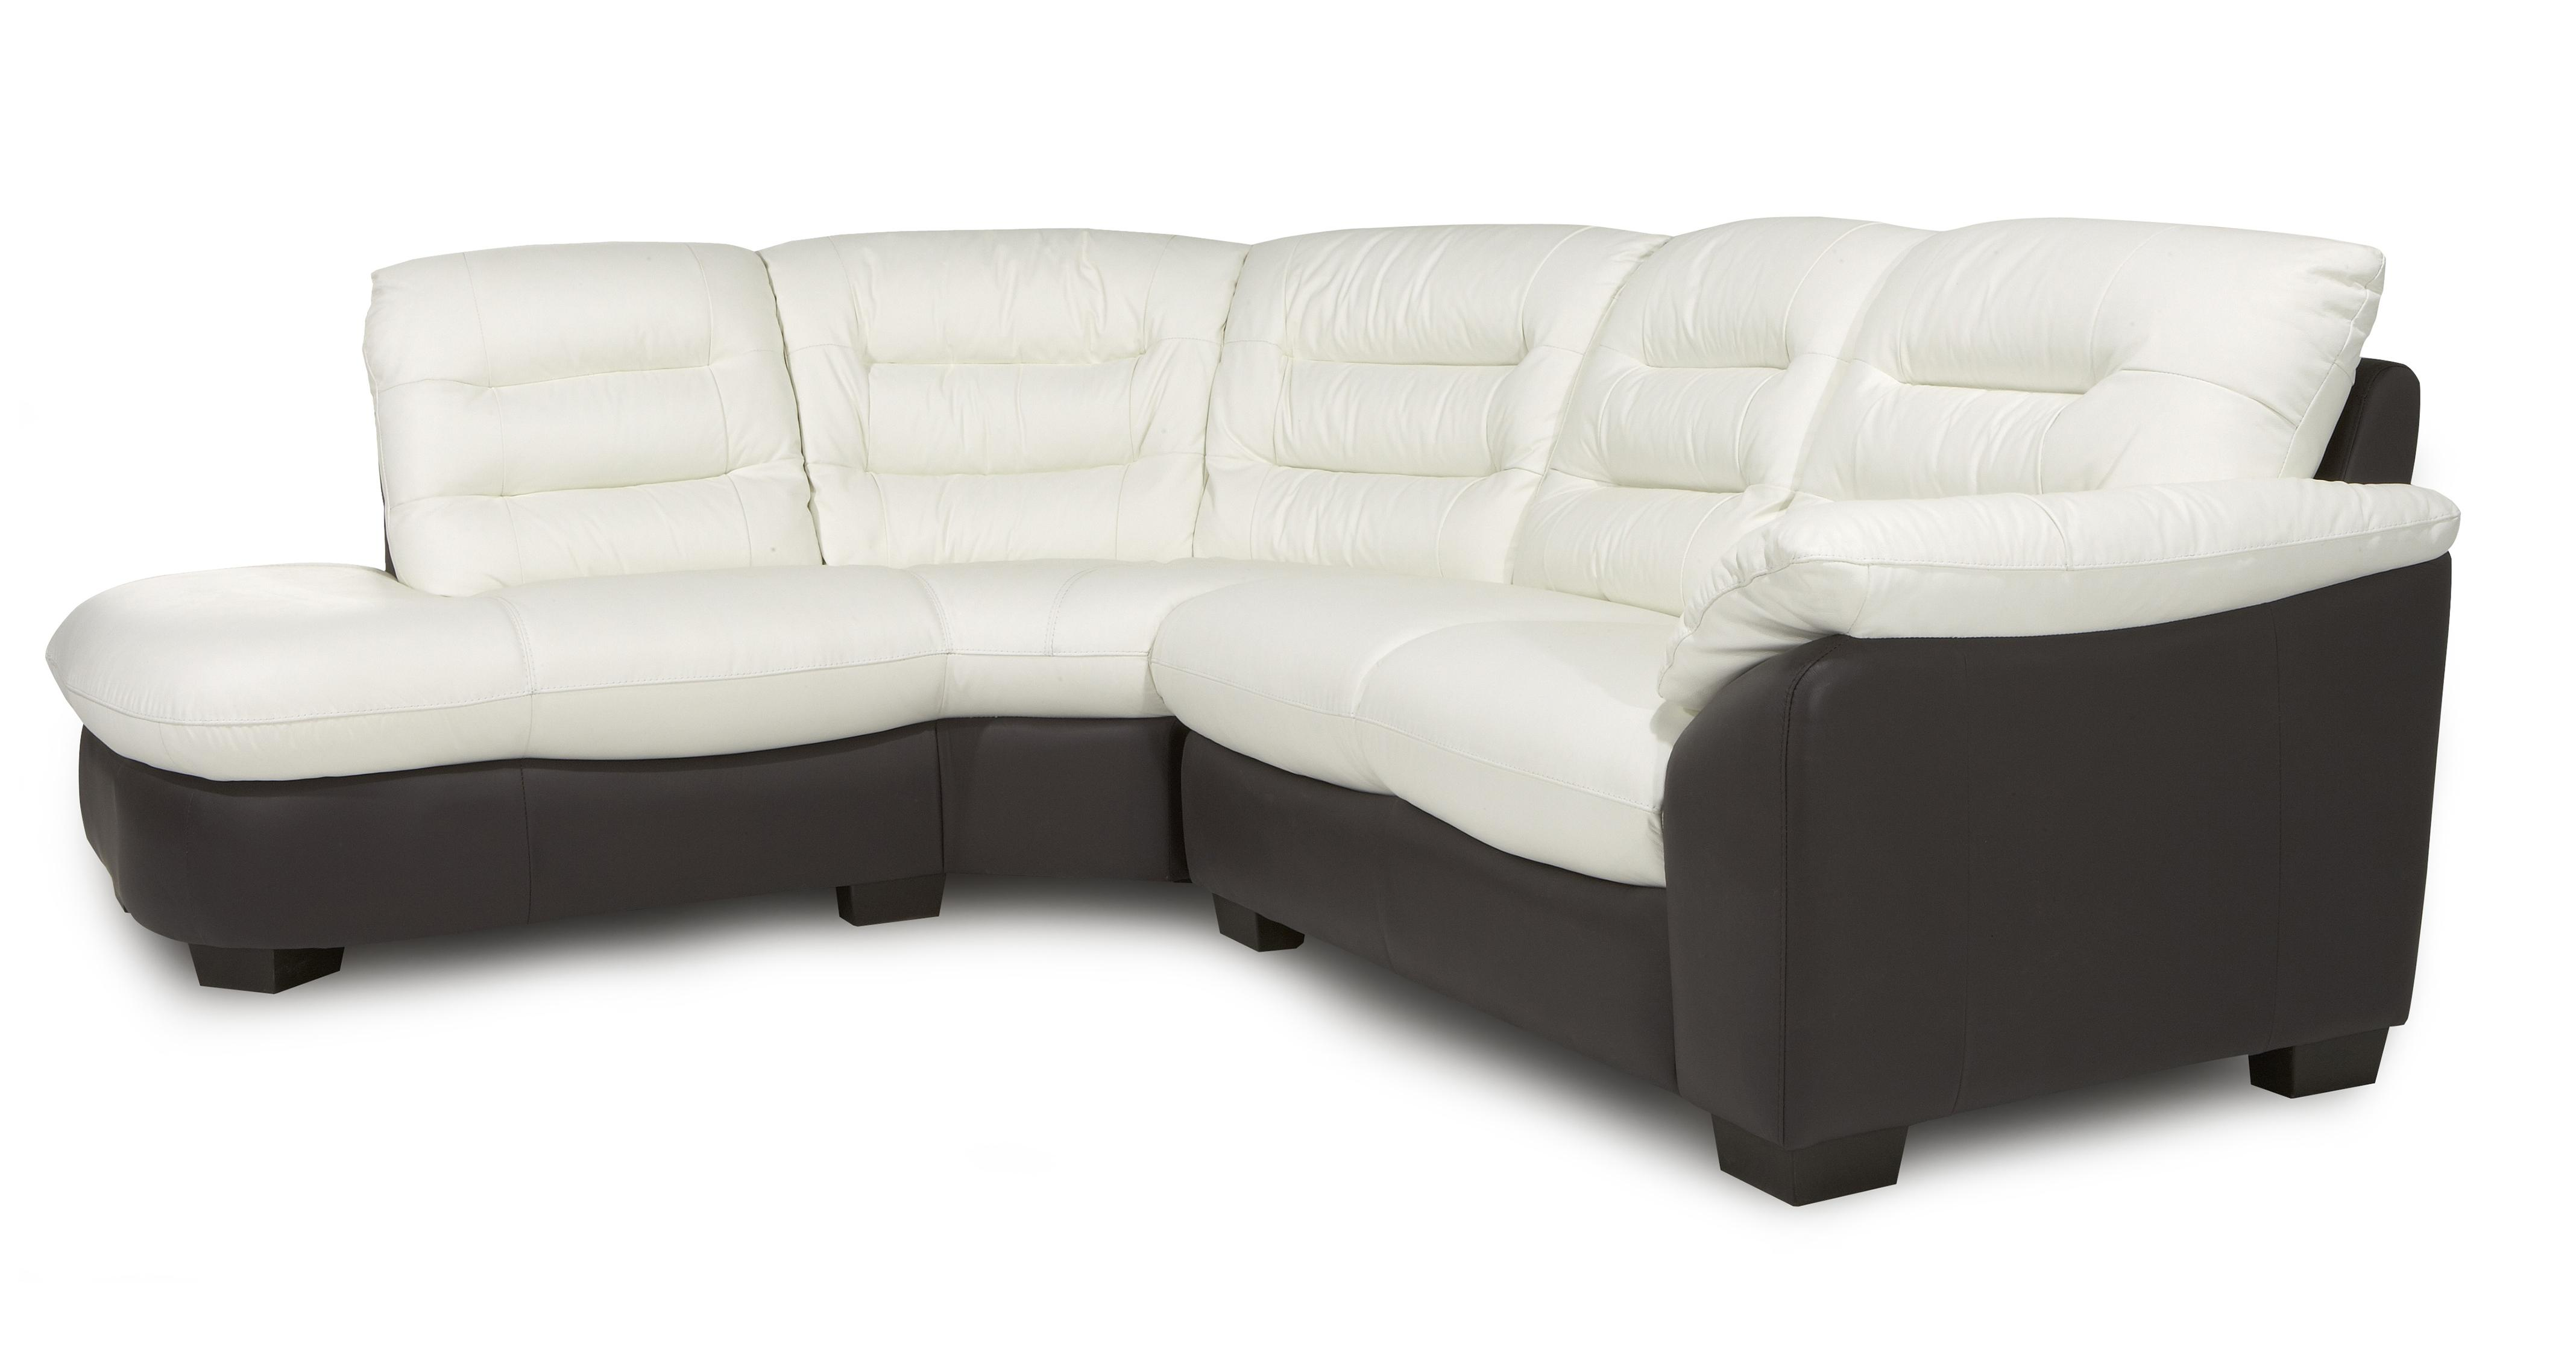 black and white sofas uk sofa set couch leather corner dfs brokeasshome